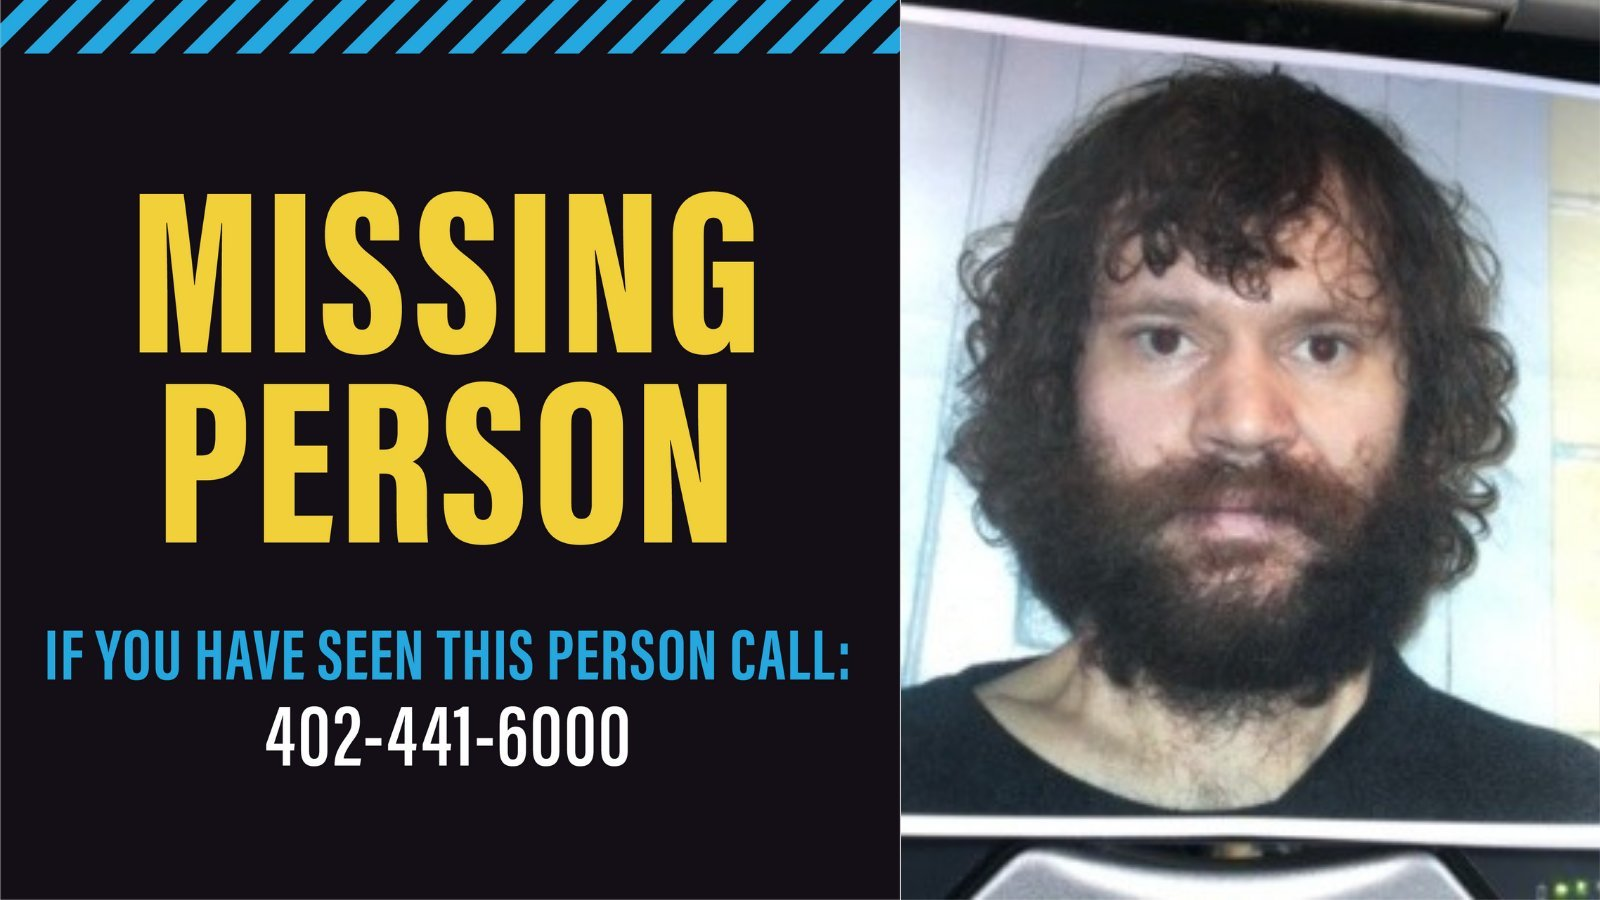 LPD seeks missing, endangered 34-year-old man